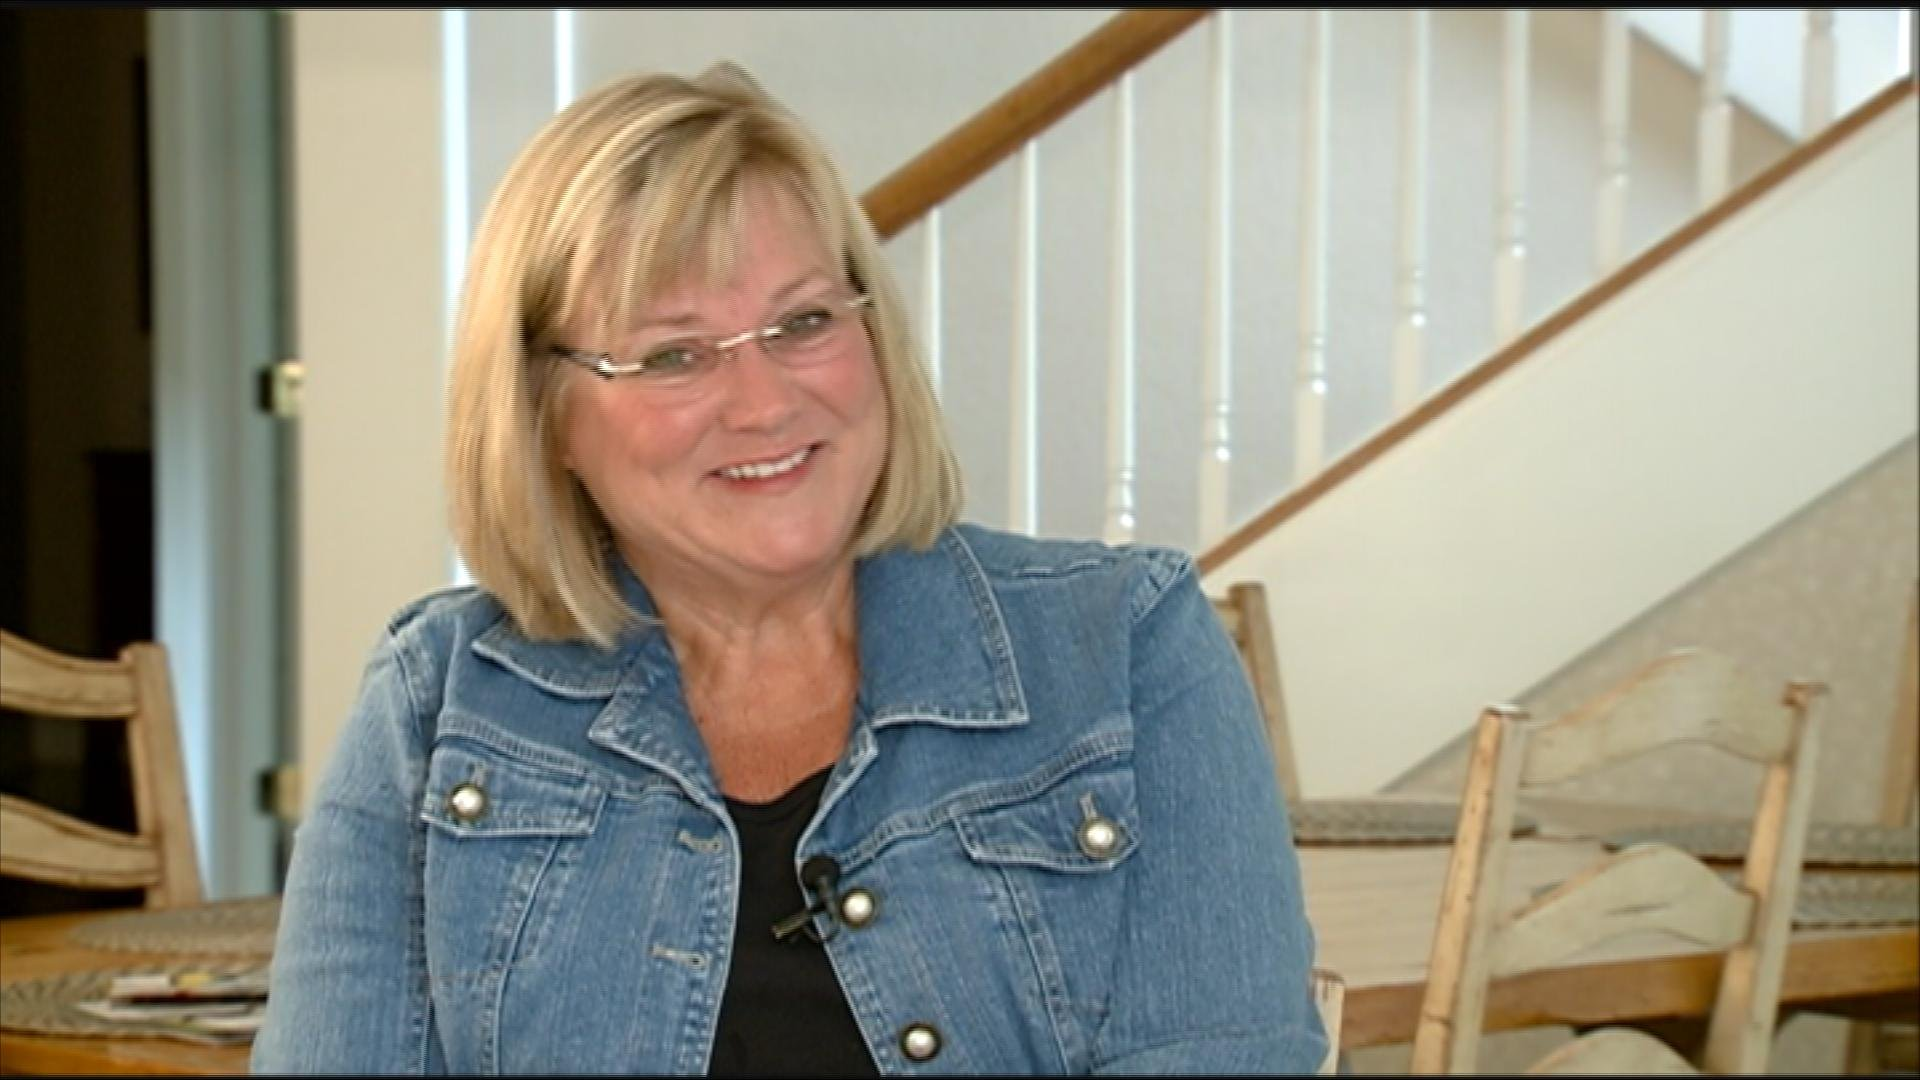 Mary Ferentz, in her interview with KWWL's Teal Jennings